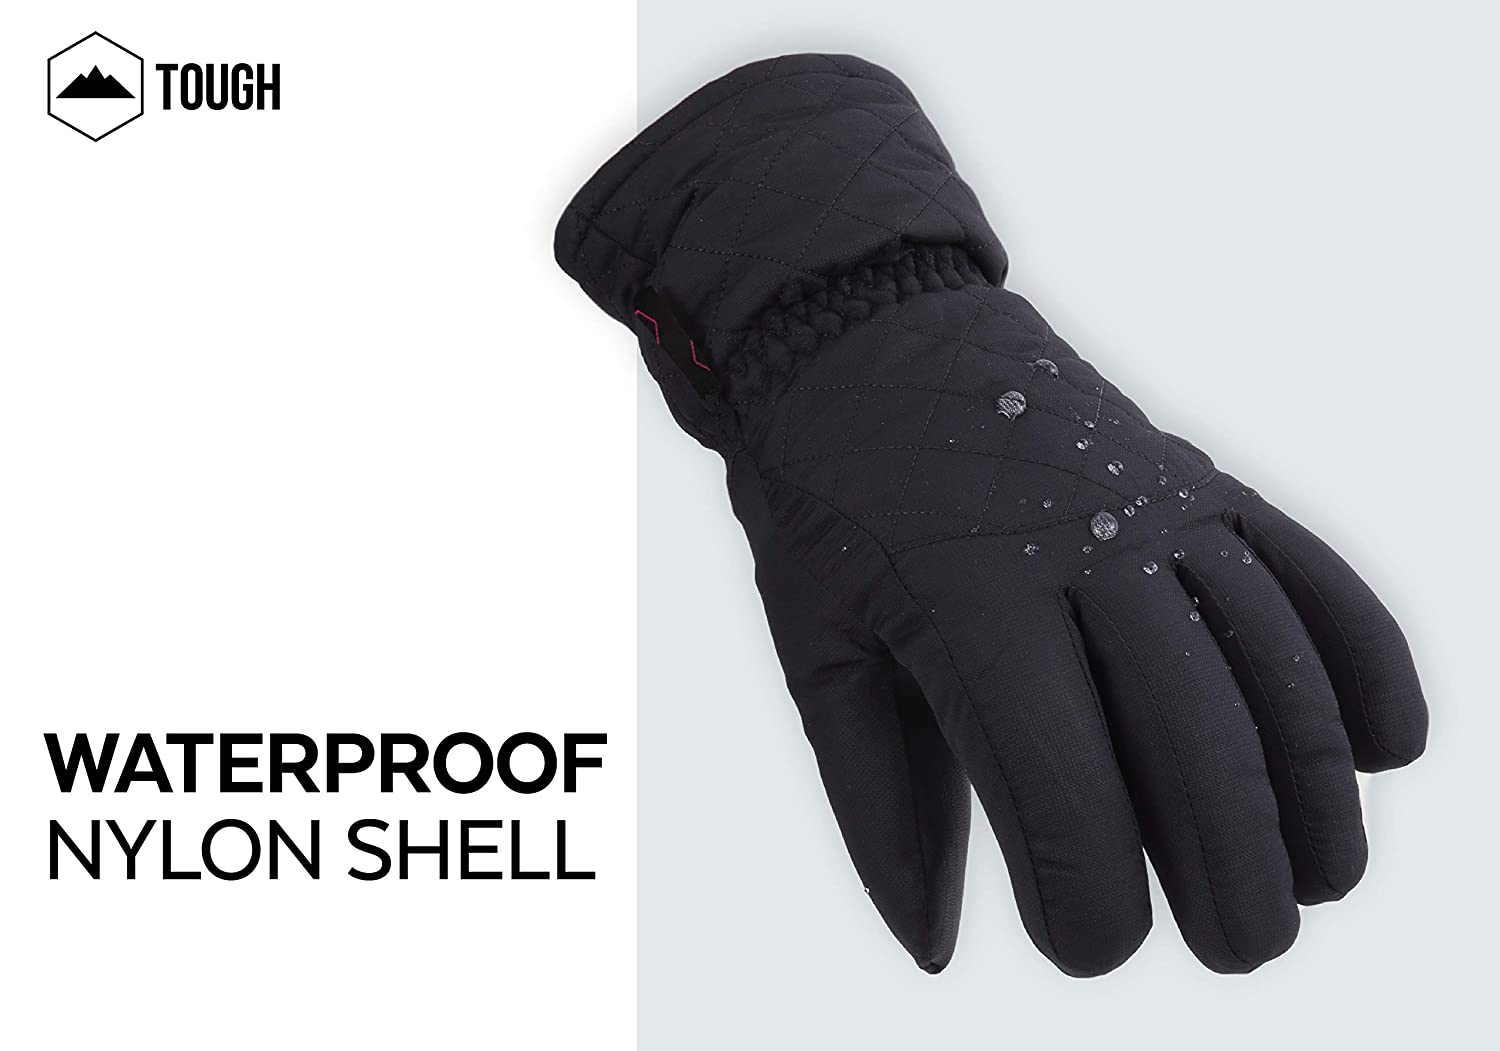 Shoveling Designed for Womens Skiing Snowboarding Waterproof Windproof Nylon Shell Thermal Insulation /& Synthetic Leather Palm Shredding Womens Winter Snow /& Ski Gloves Snowballs